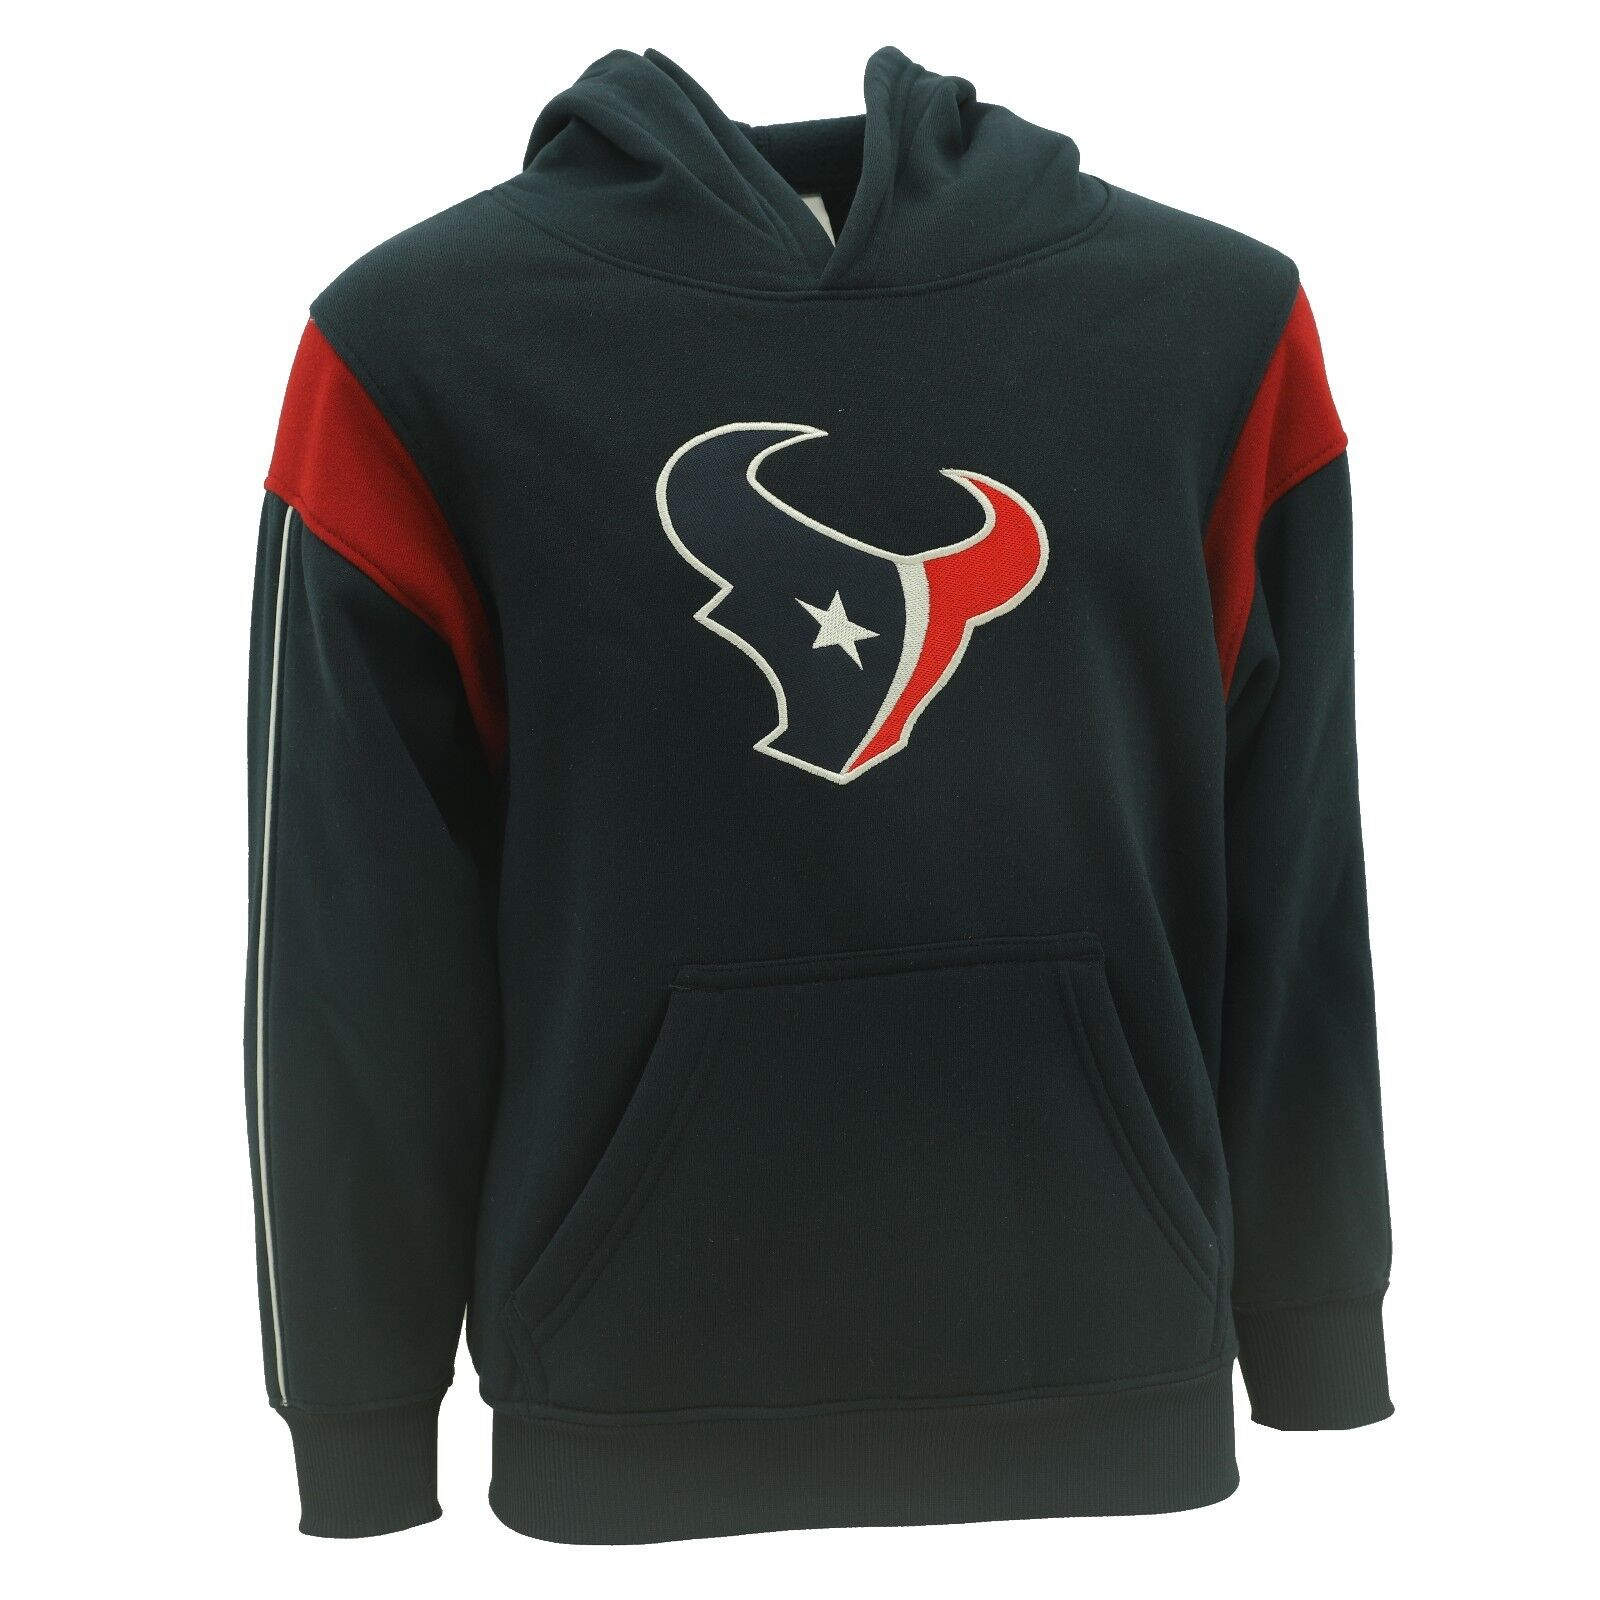 246841c4 Details about Houston Texans Youth Kids Size NFL Football Hooded Sweatshirt  New